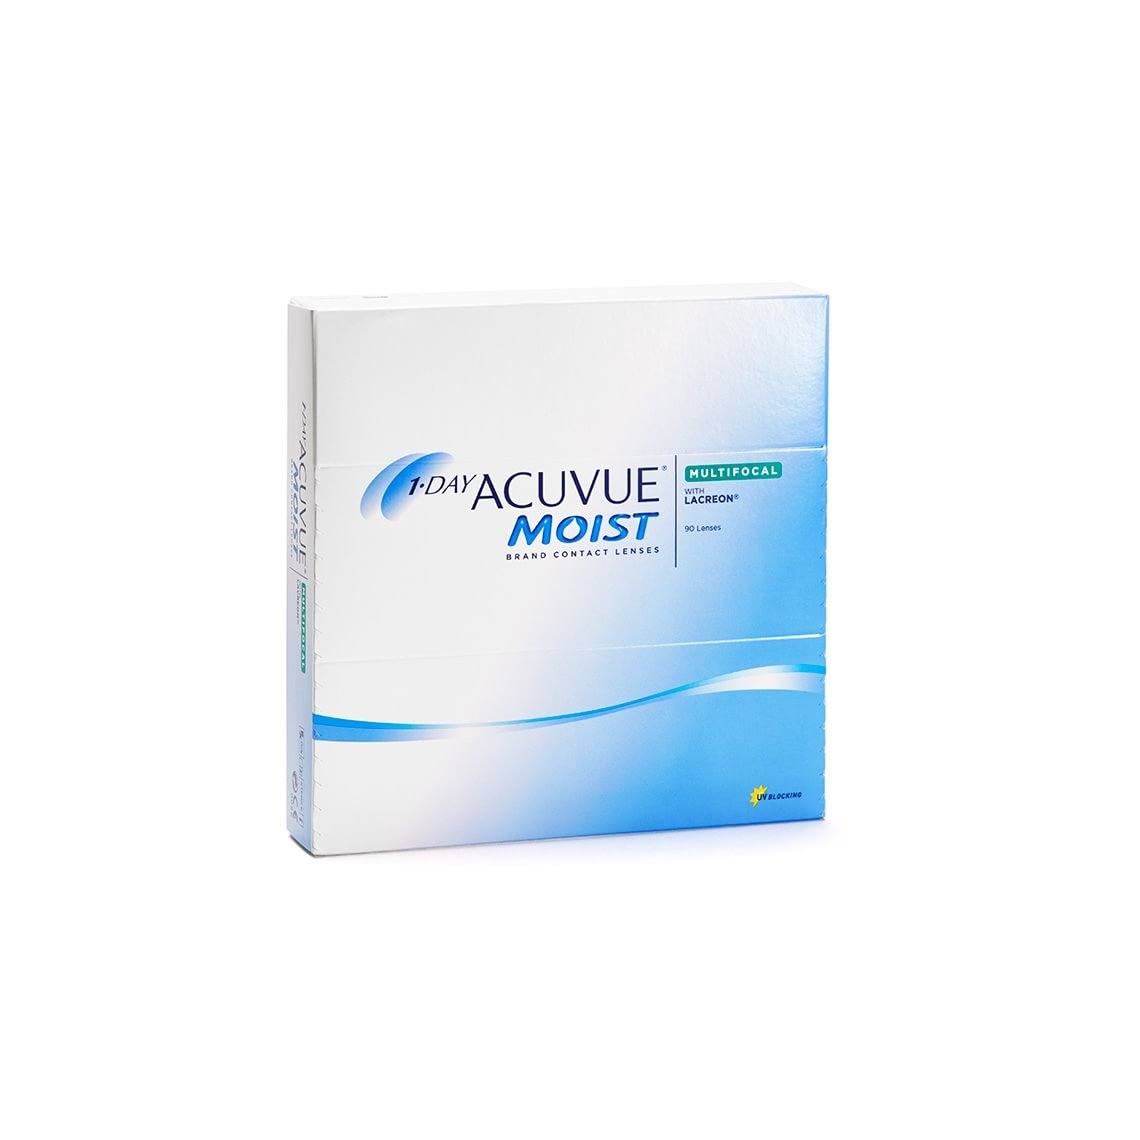 1-Day Acuvue Moist Multifocal 90 stk/pk